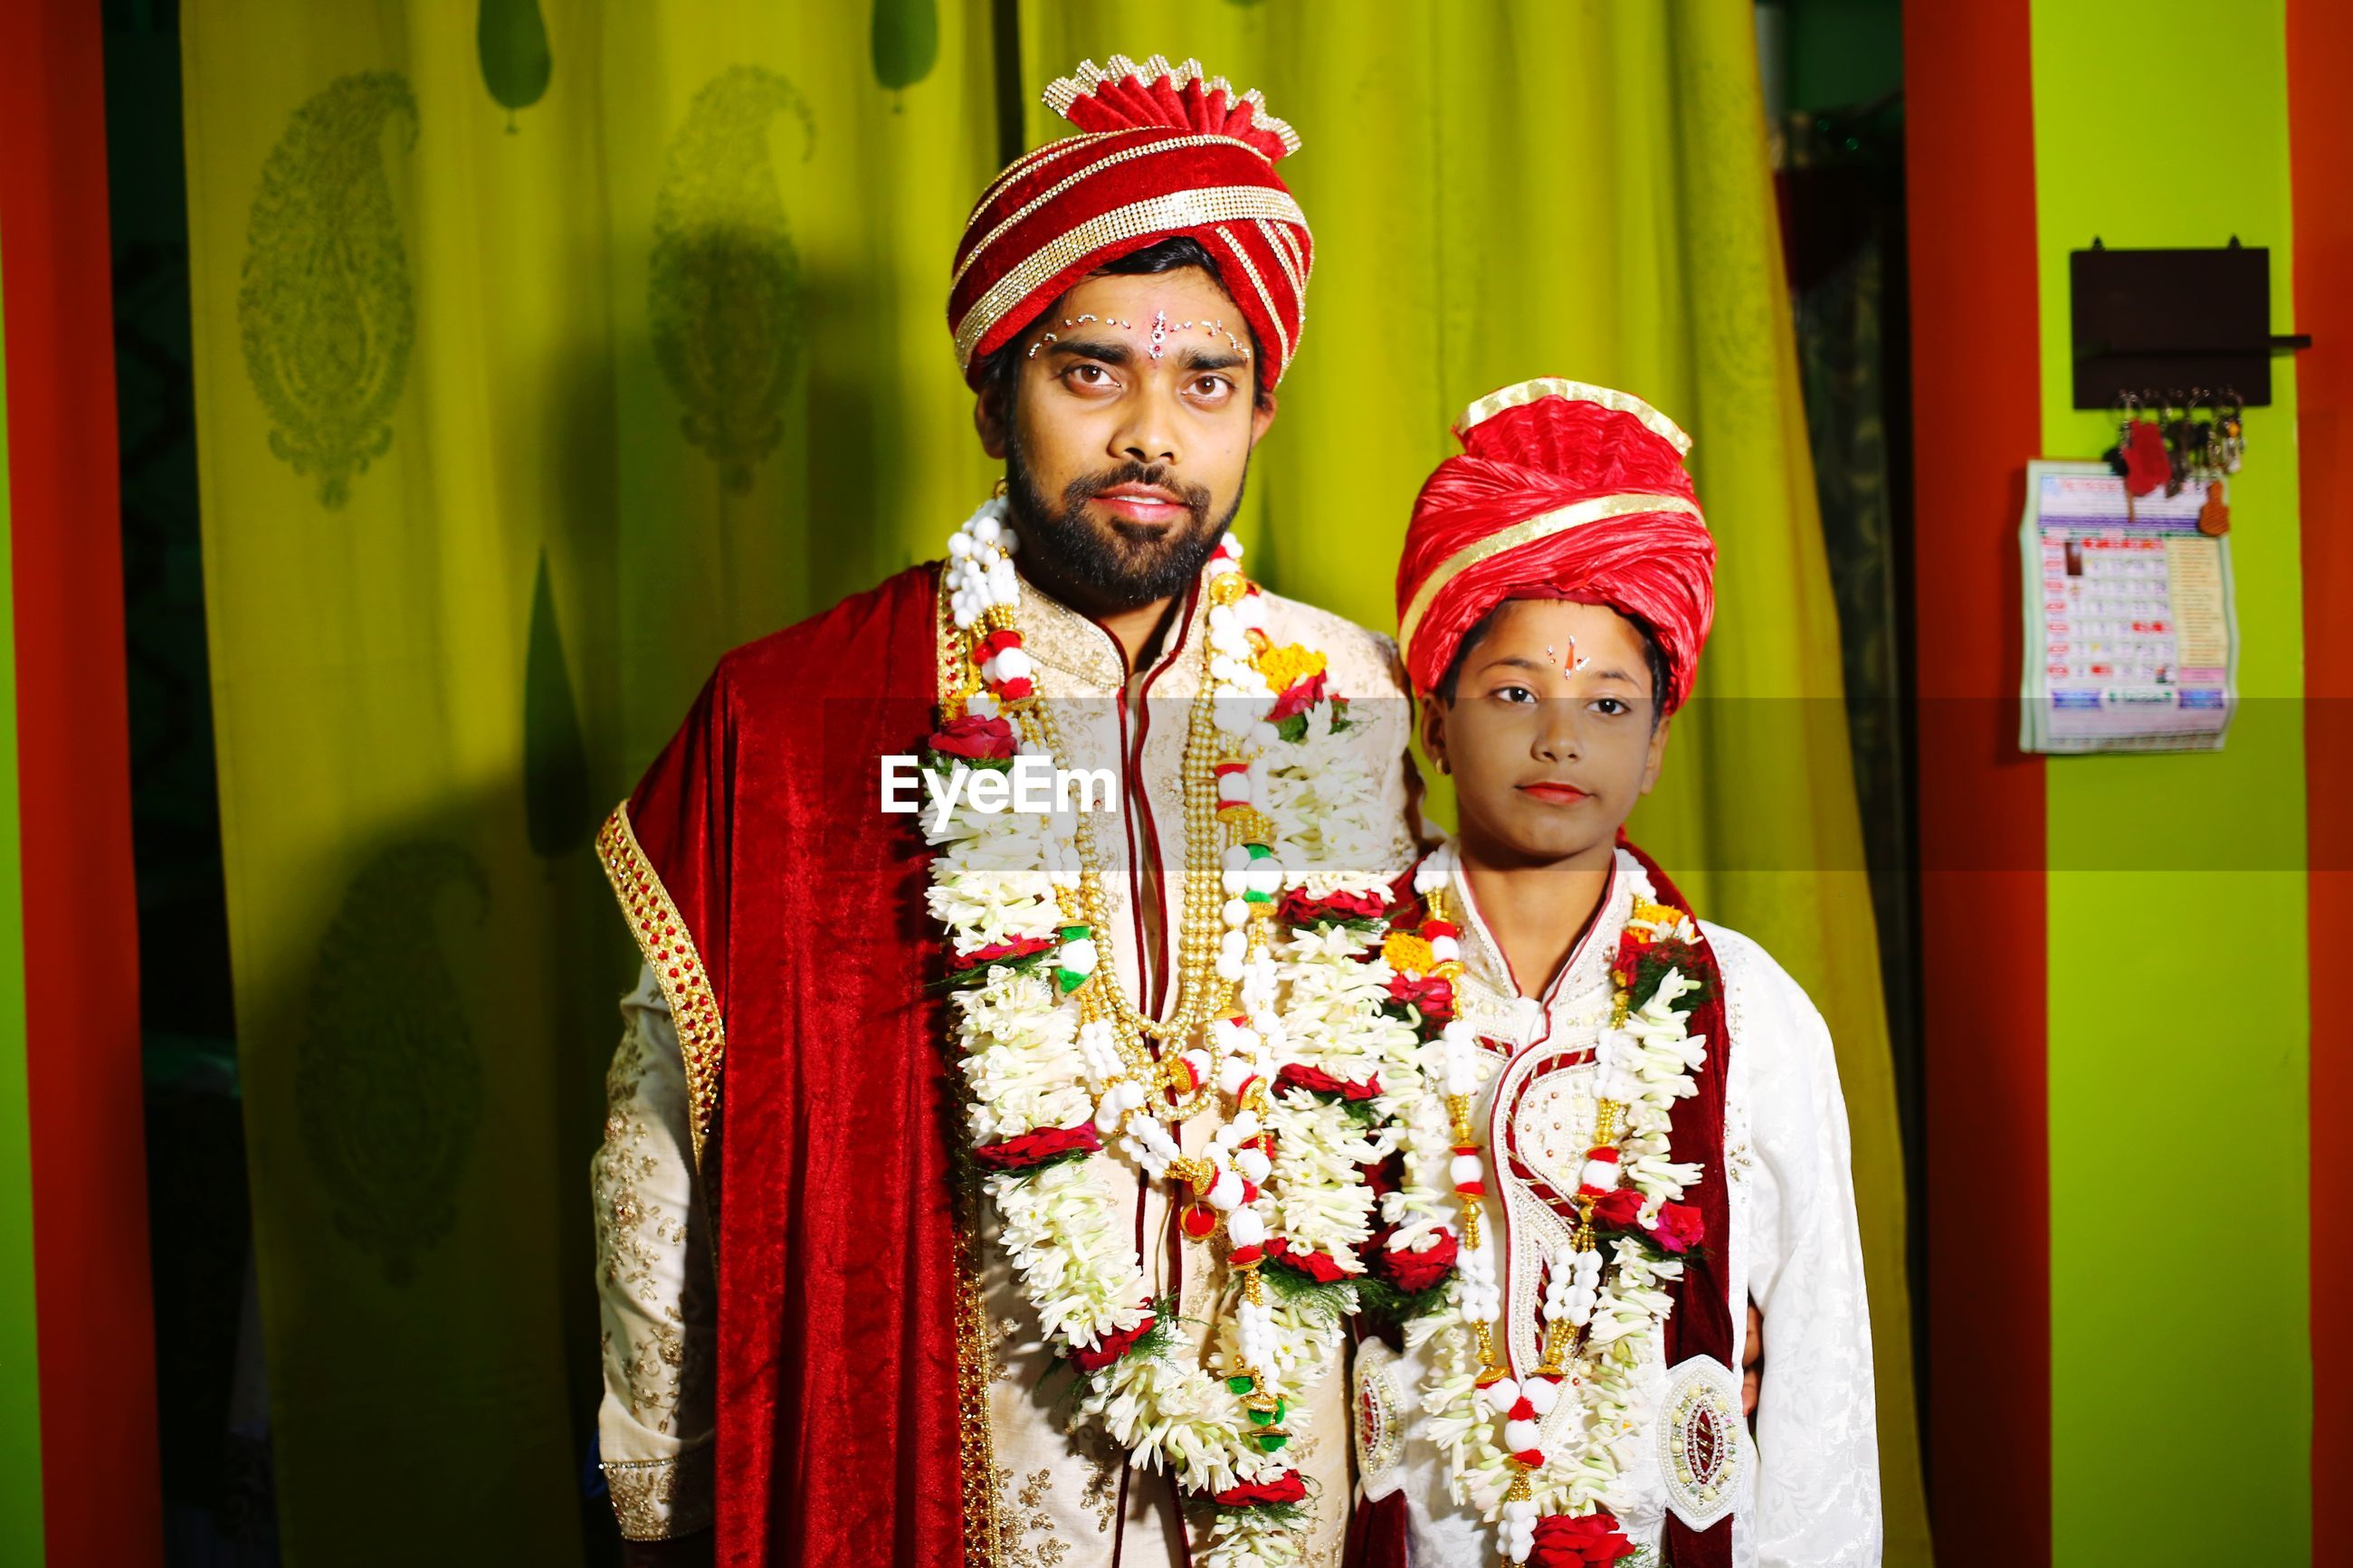 Hindu bride groom with child in same style